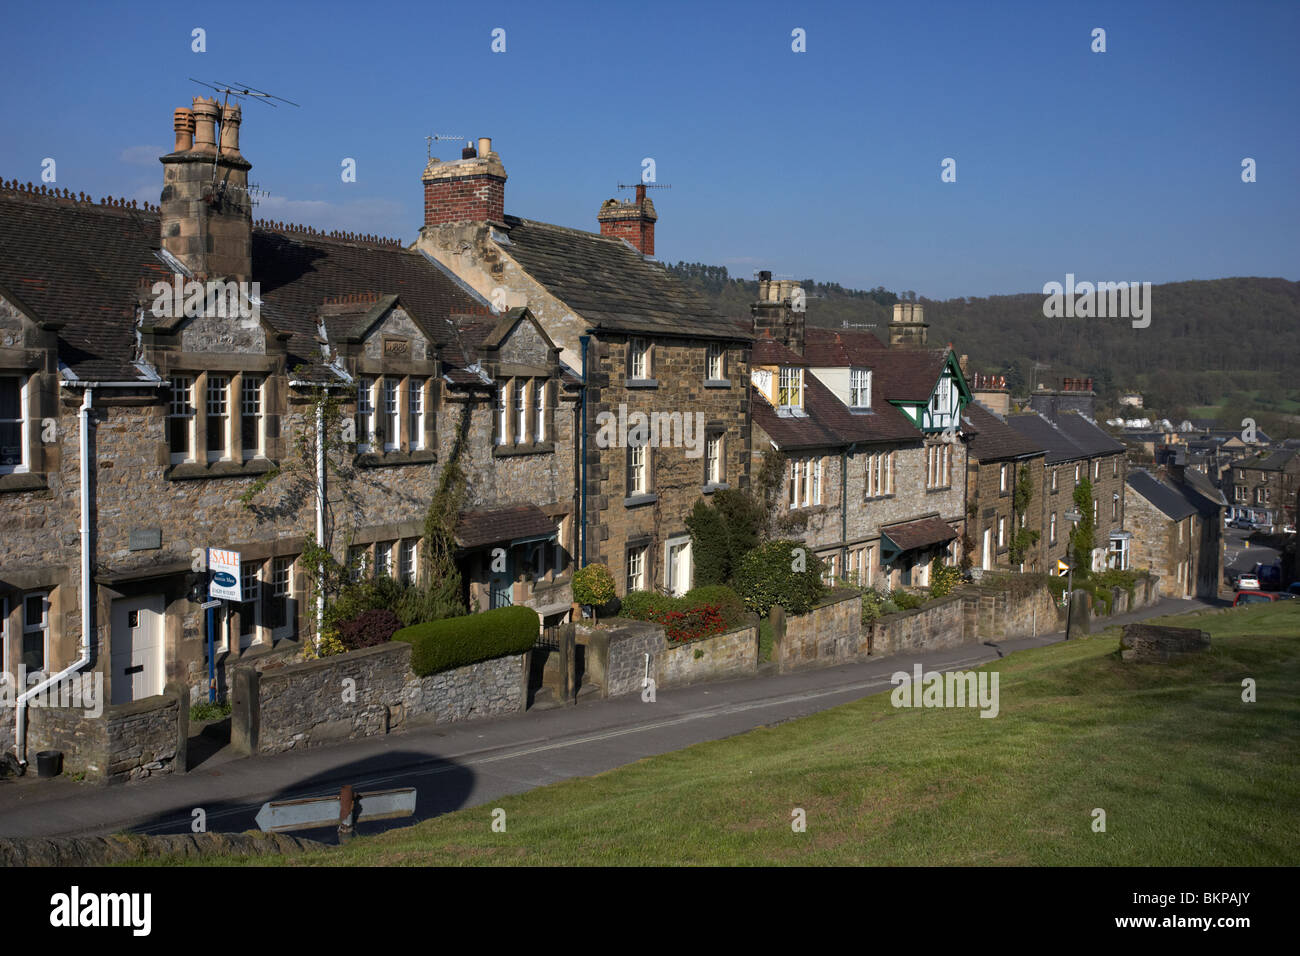 terraced houses on the hill in church street Bakewell market town in the high Peak District Derbyshire England UK - Stock Image